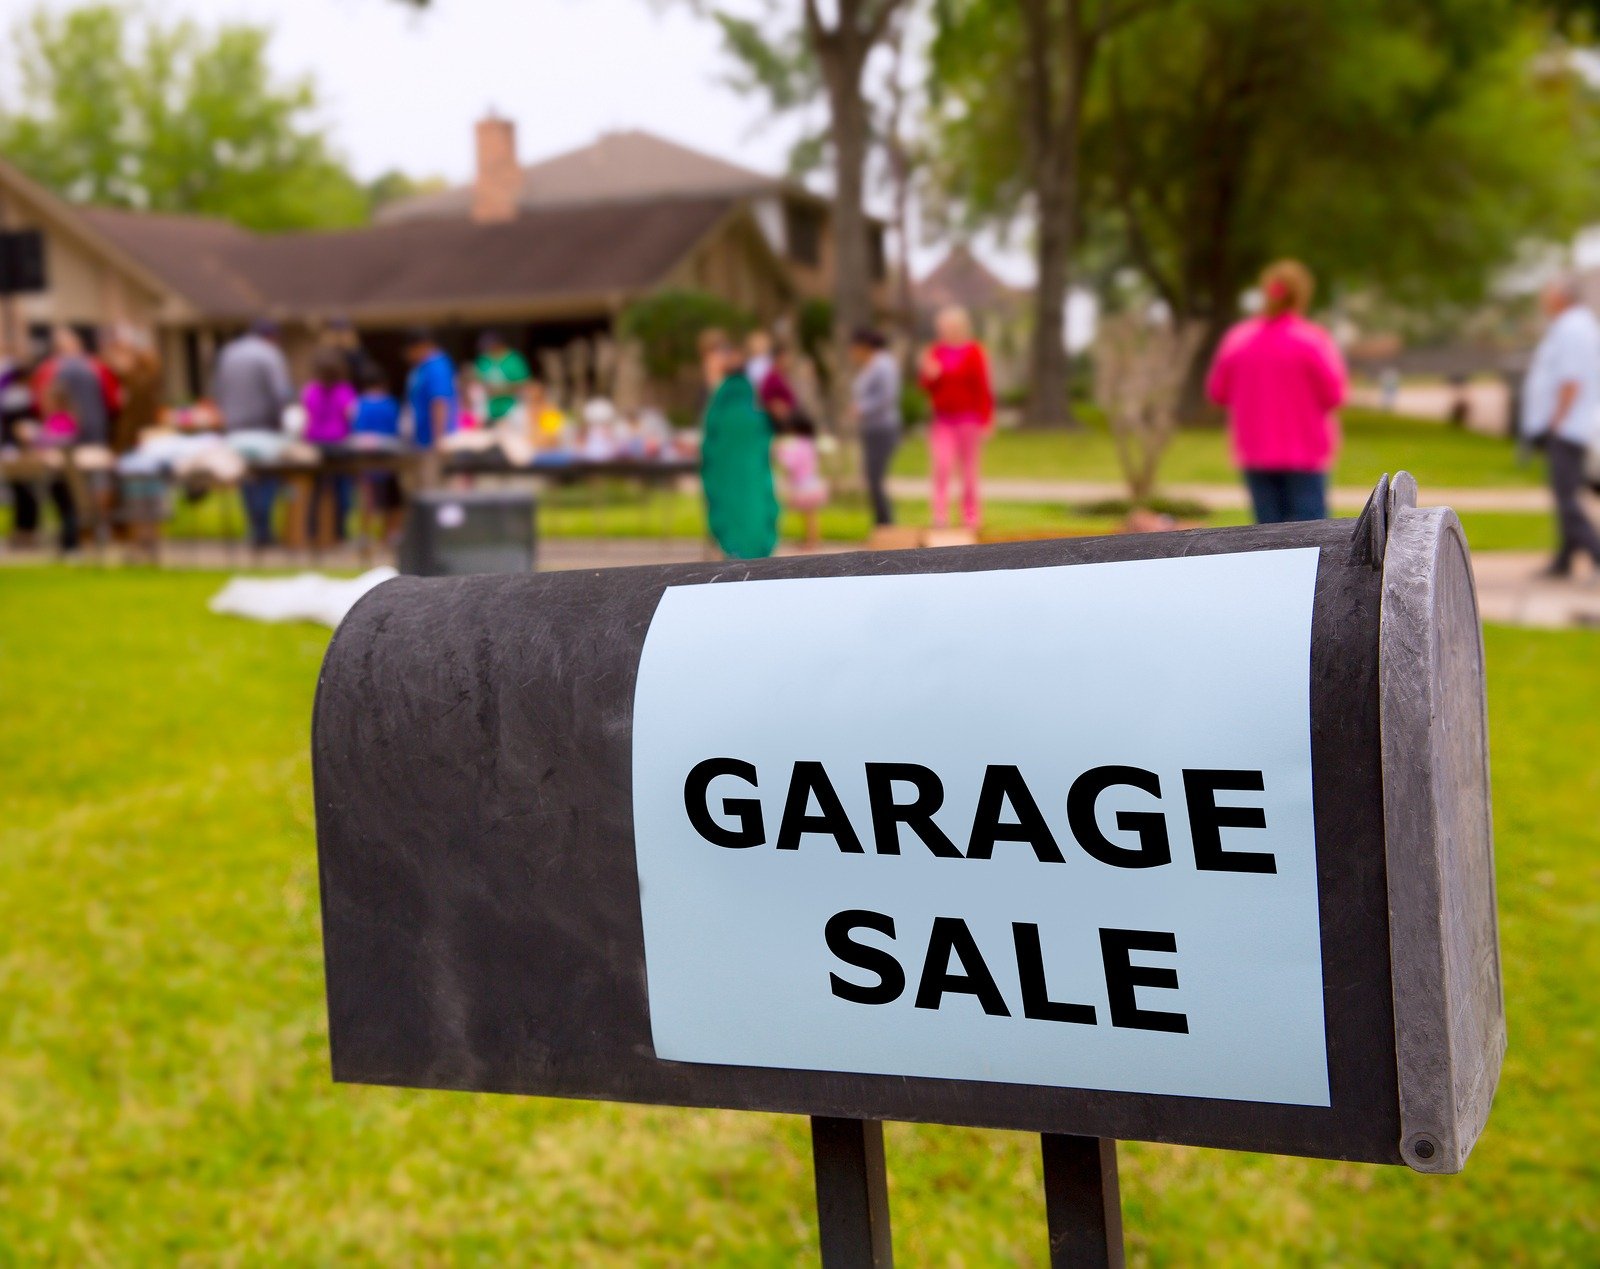 Garage Sale Price Stickers Garage Sale Tips How To Have A Garage Sale That Makes Money